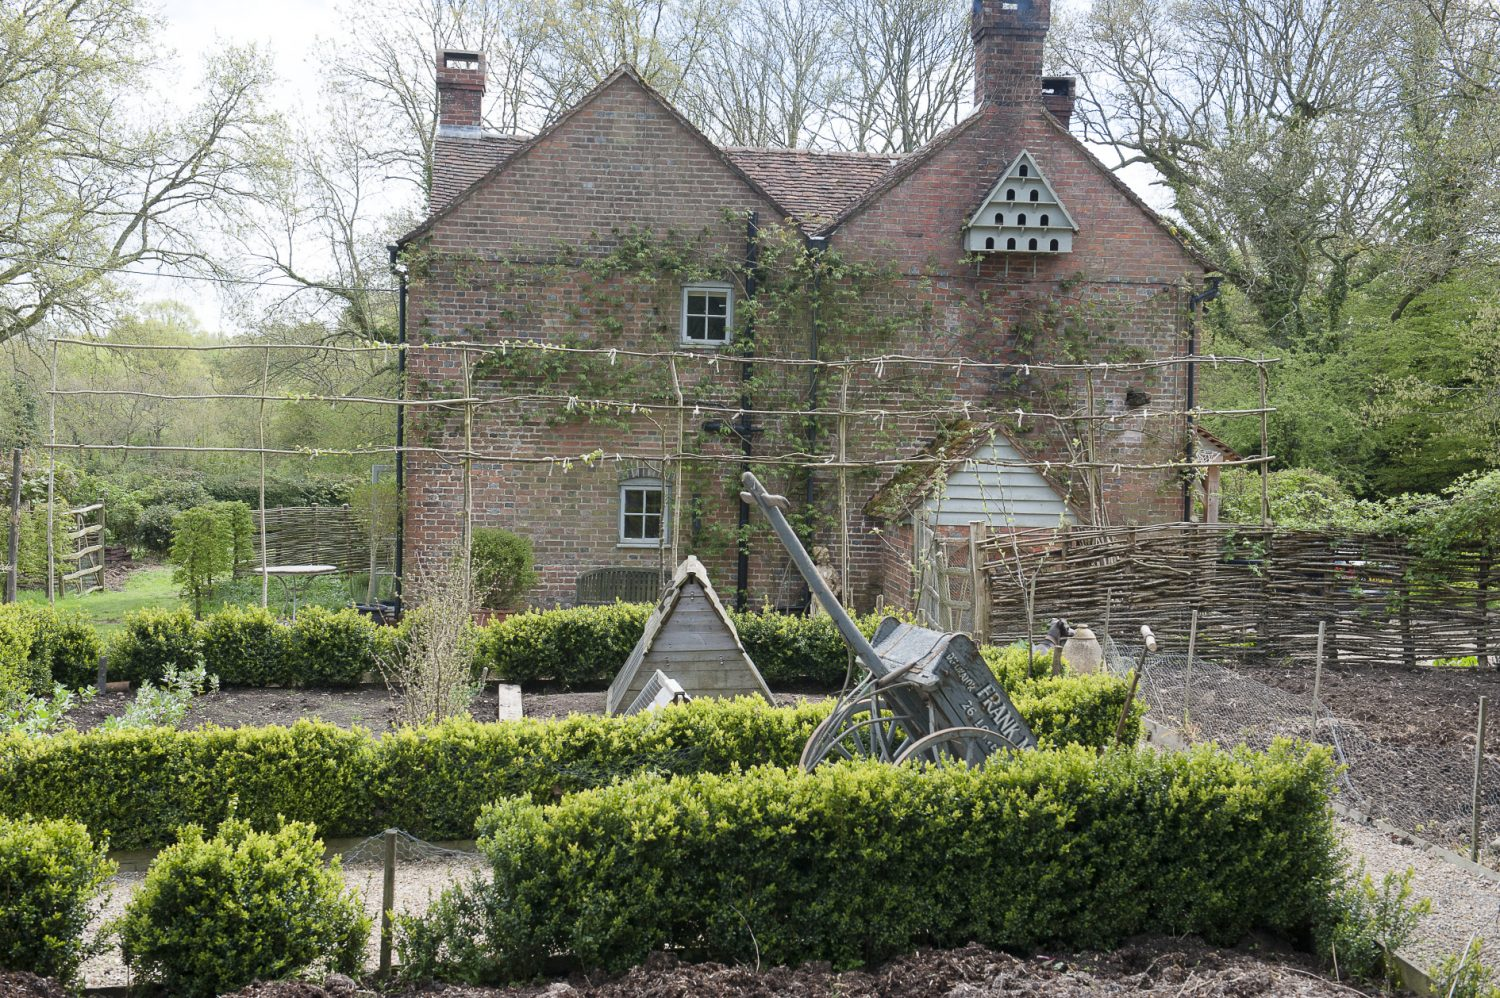 The idyllic kitchen garden offers a plentiful supply of fruit and vegetables and is home to the family's quail and beehives